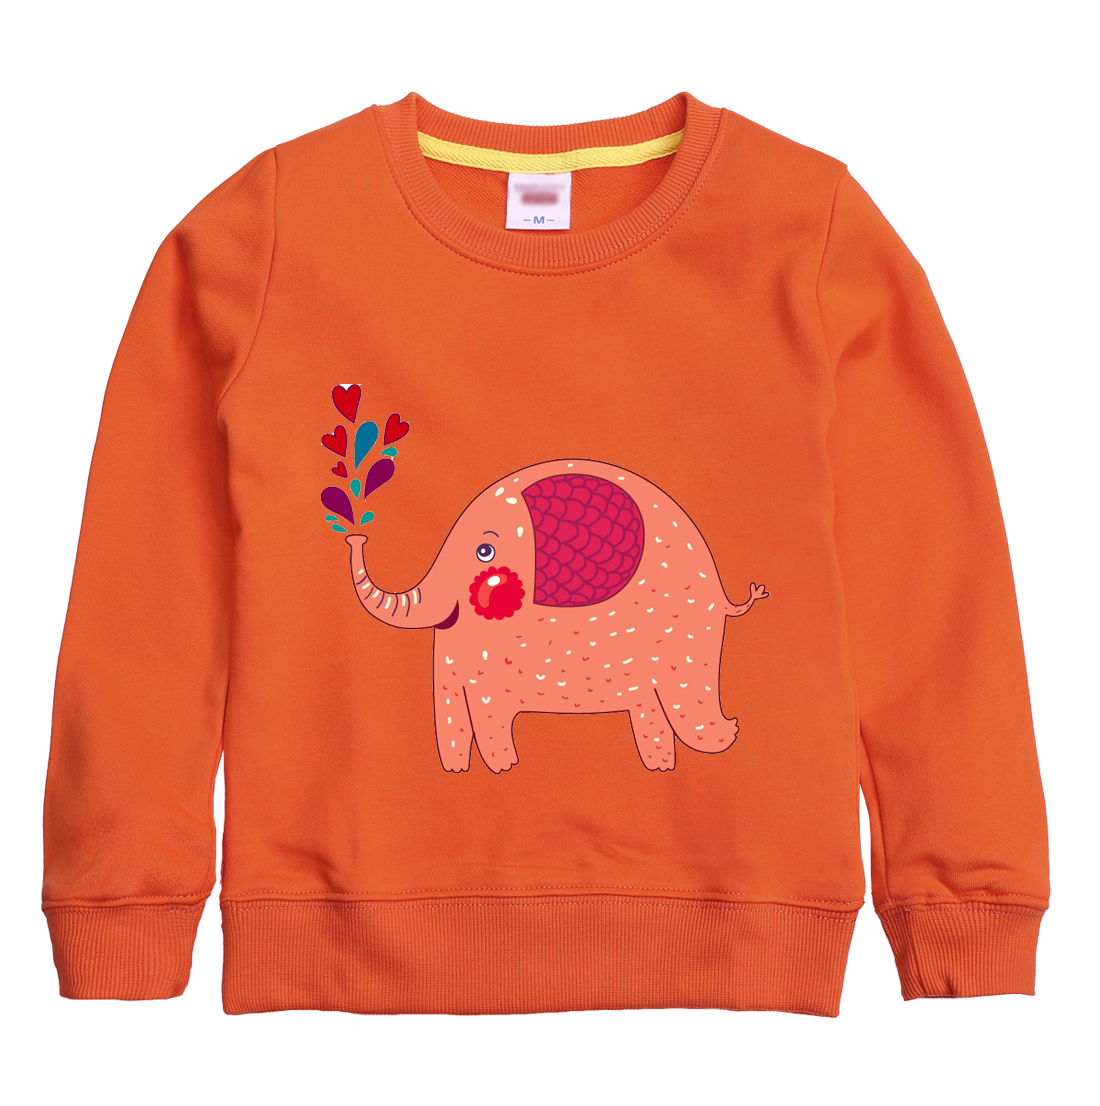 Elephant cartoon pattern printed winter autumn sweatshirt design for children hoodie childrens clothing with 8 colors for kids